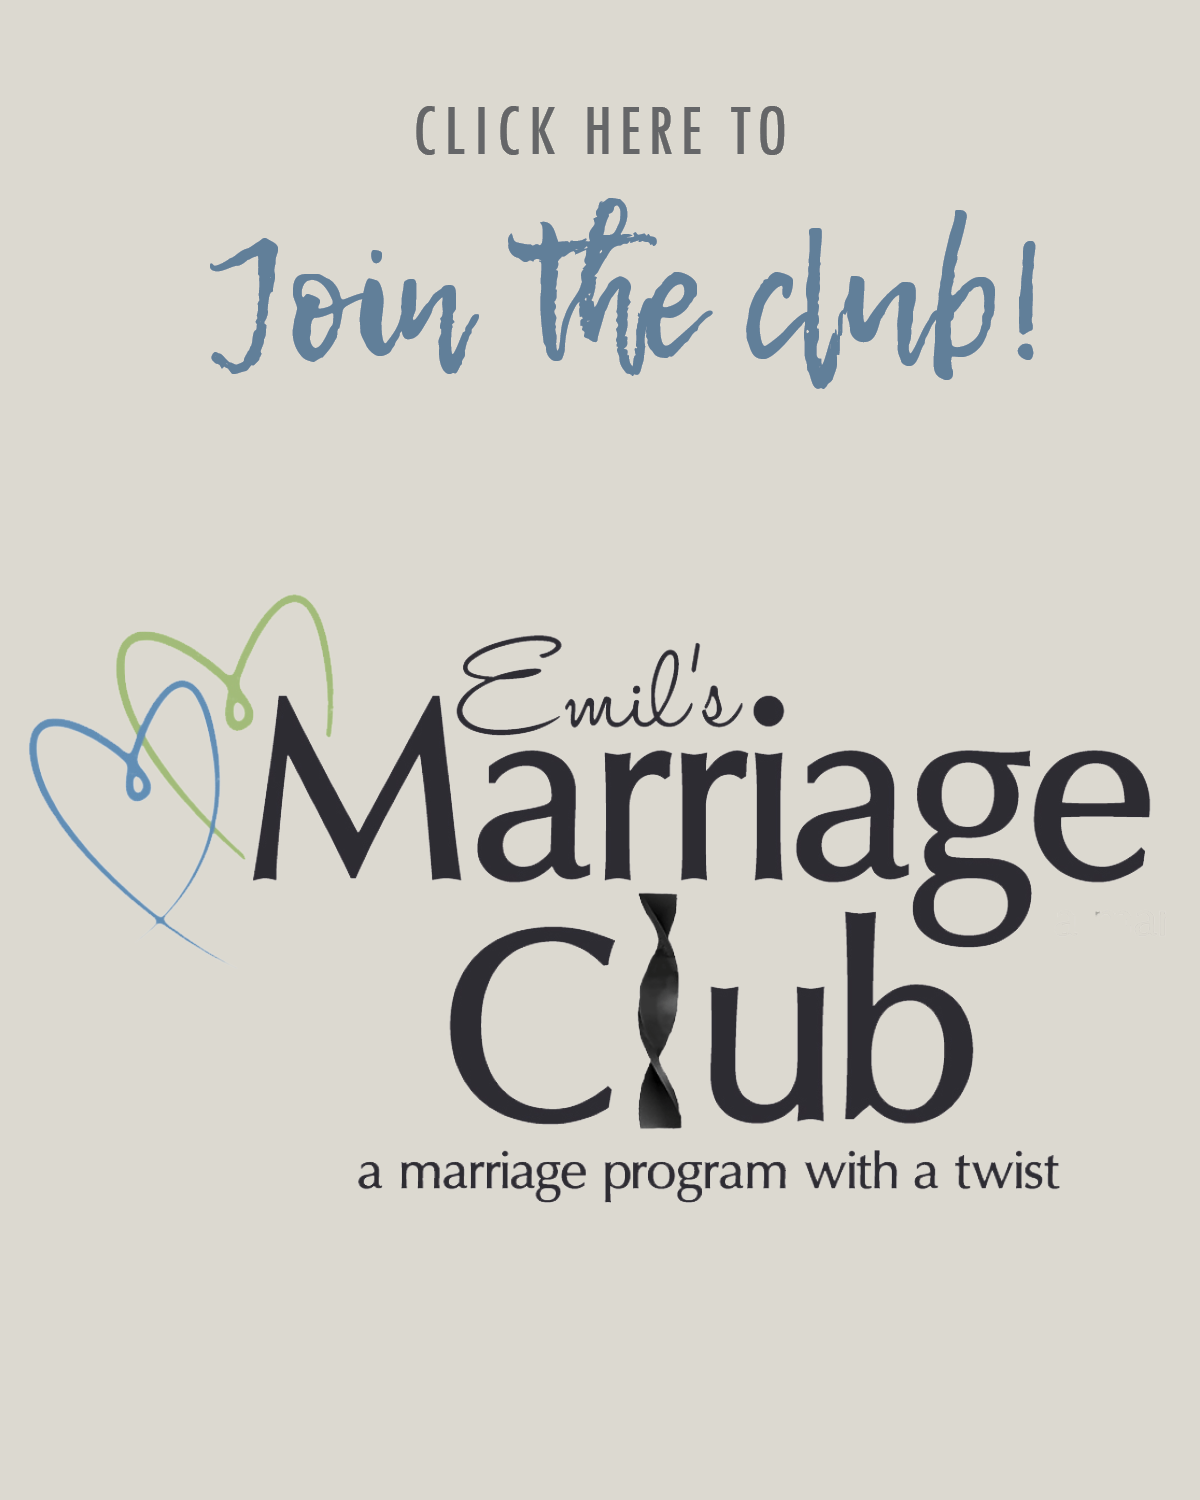 Join Emil's Marriage Club. A marriage program with a twist